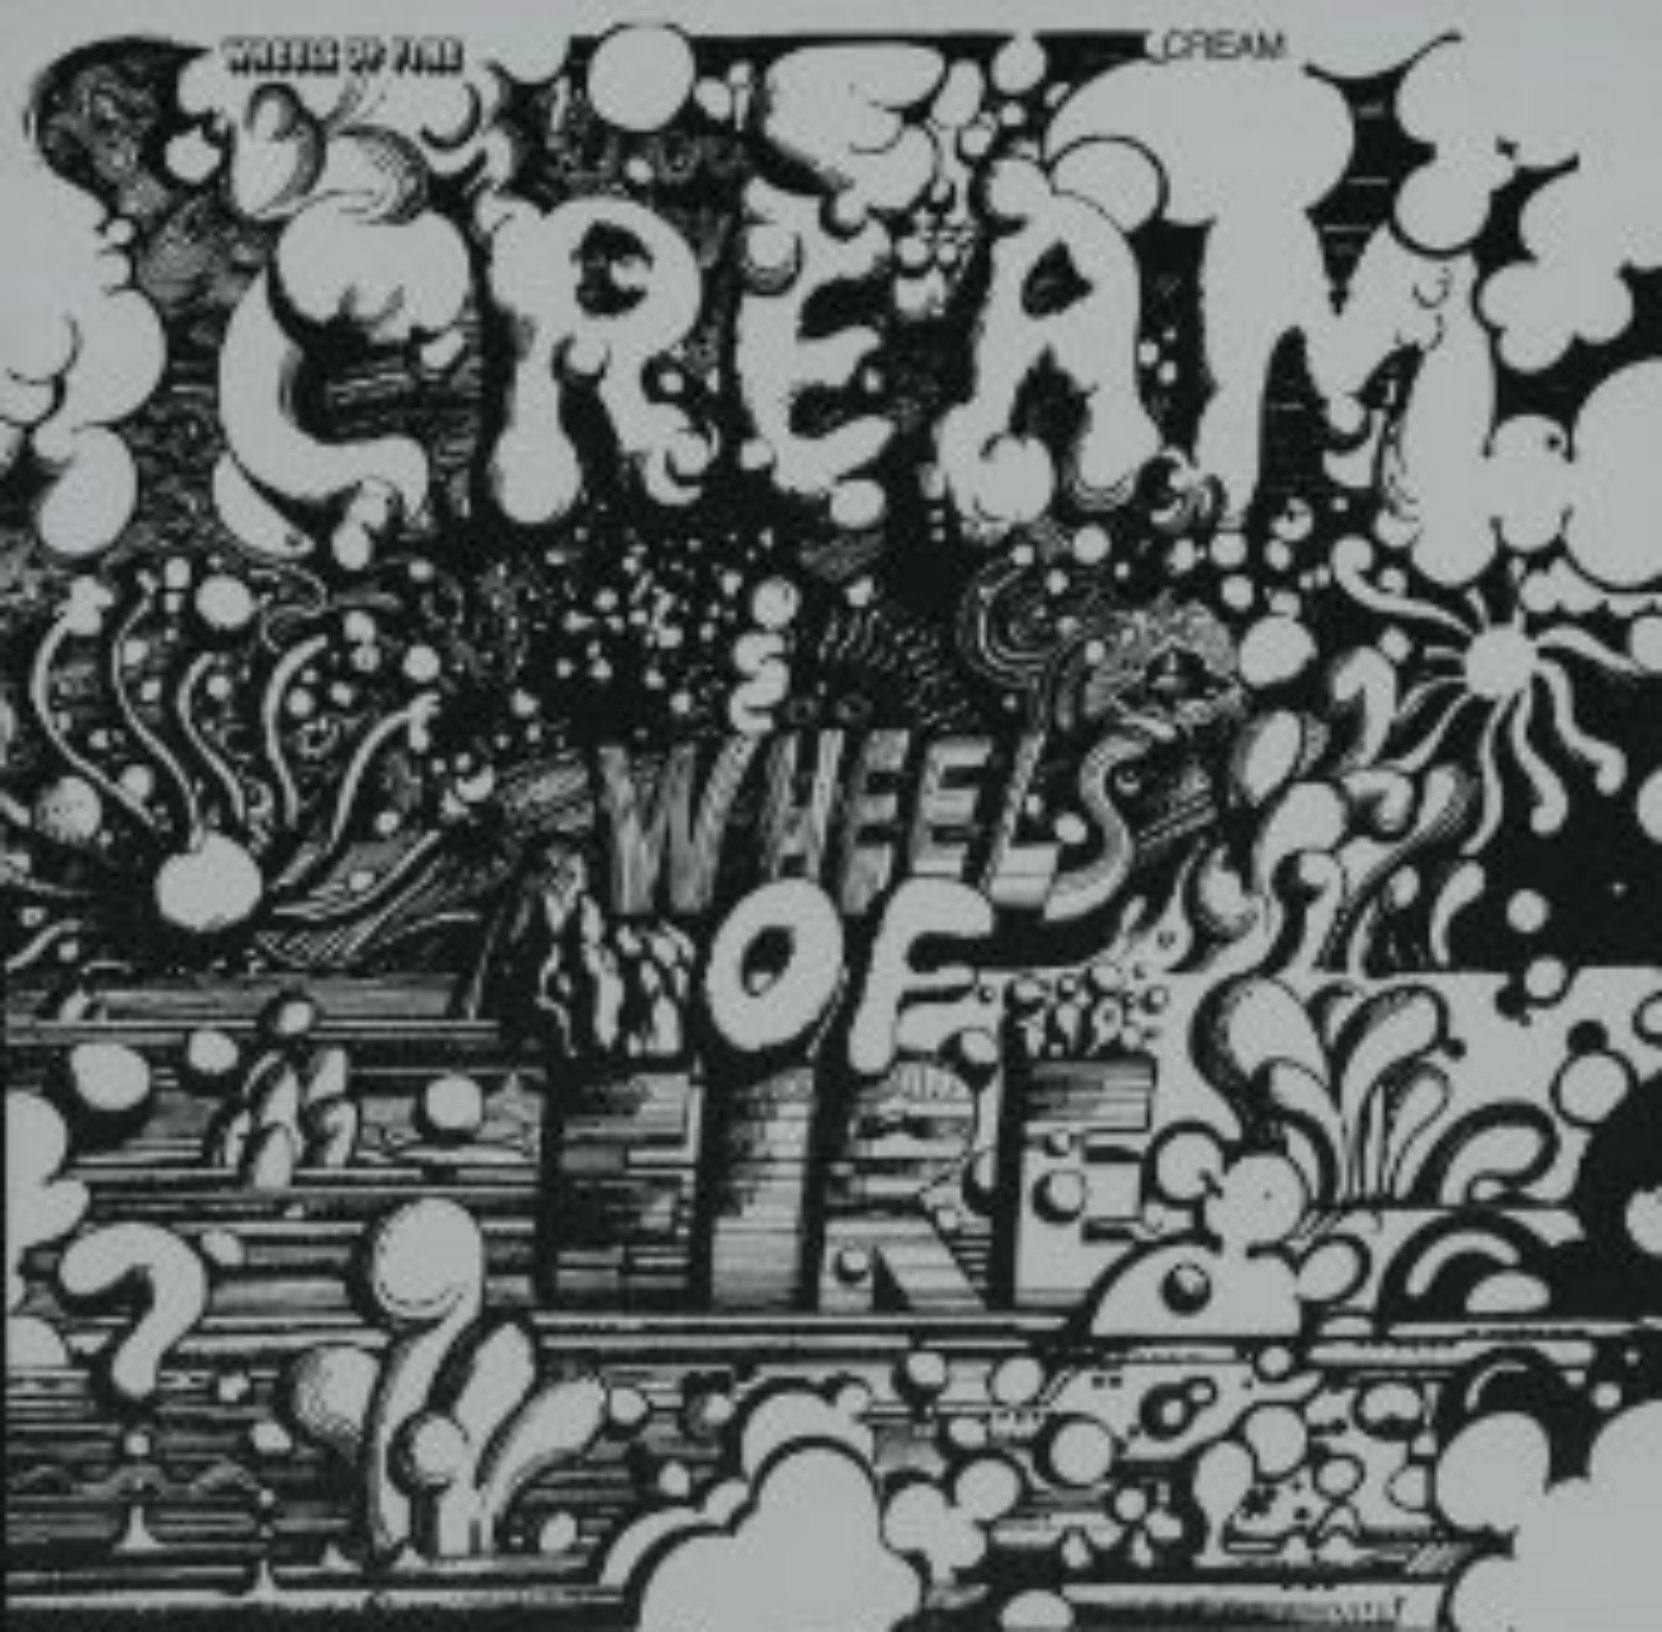 Cream, Wheels of Fire, album cover. Released in 1968 this album contained covers of several classic blues songs.